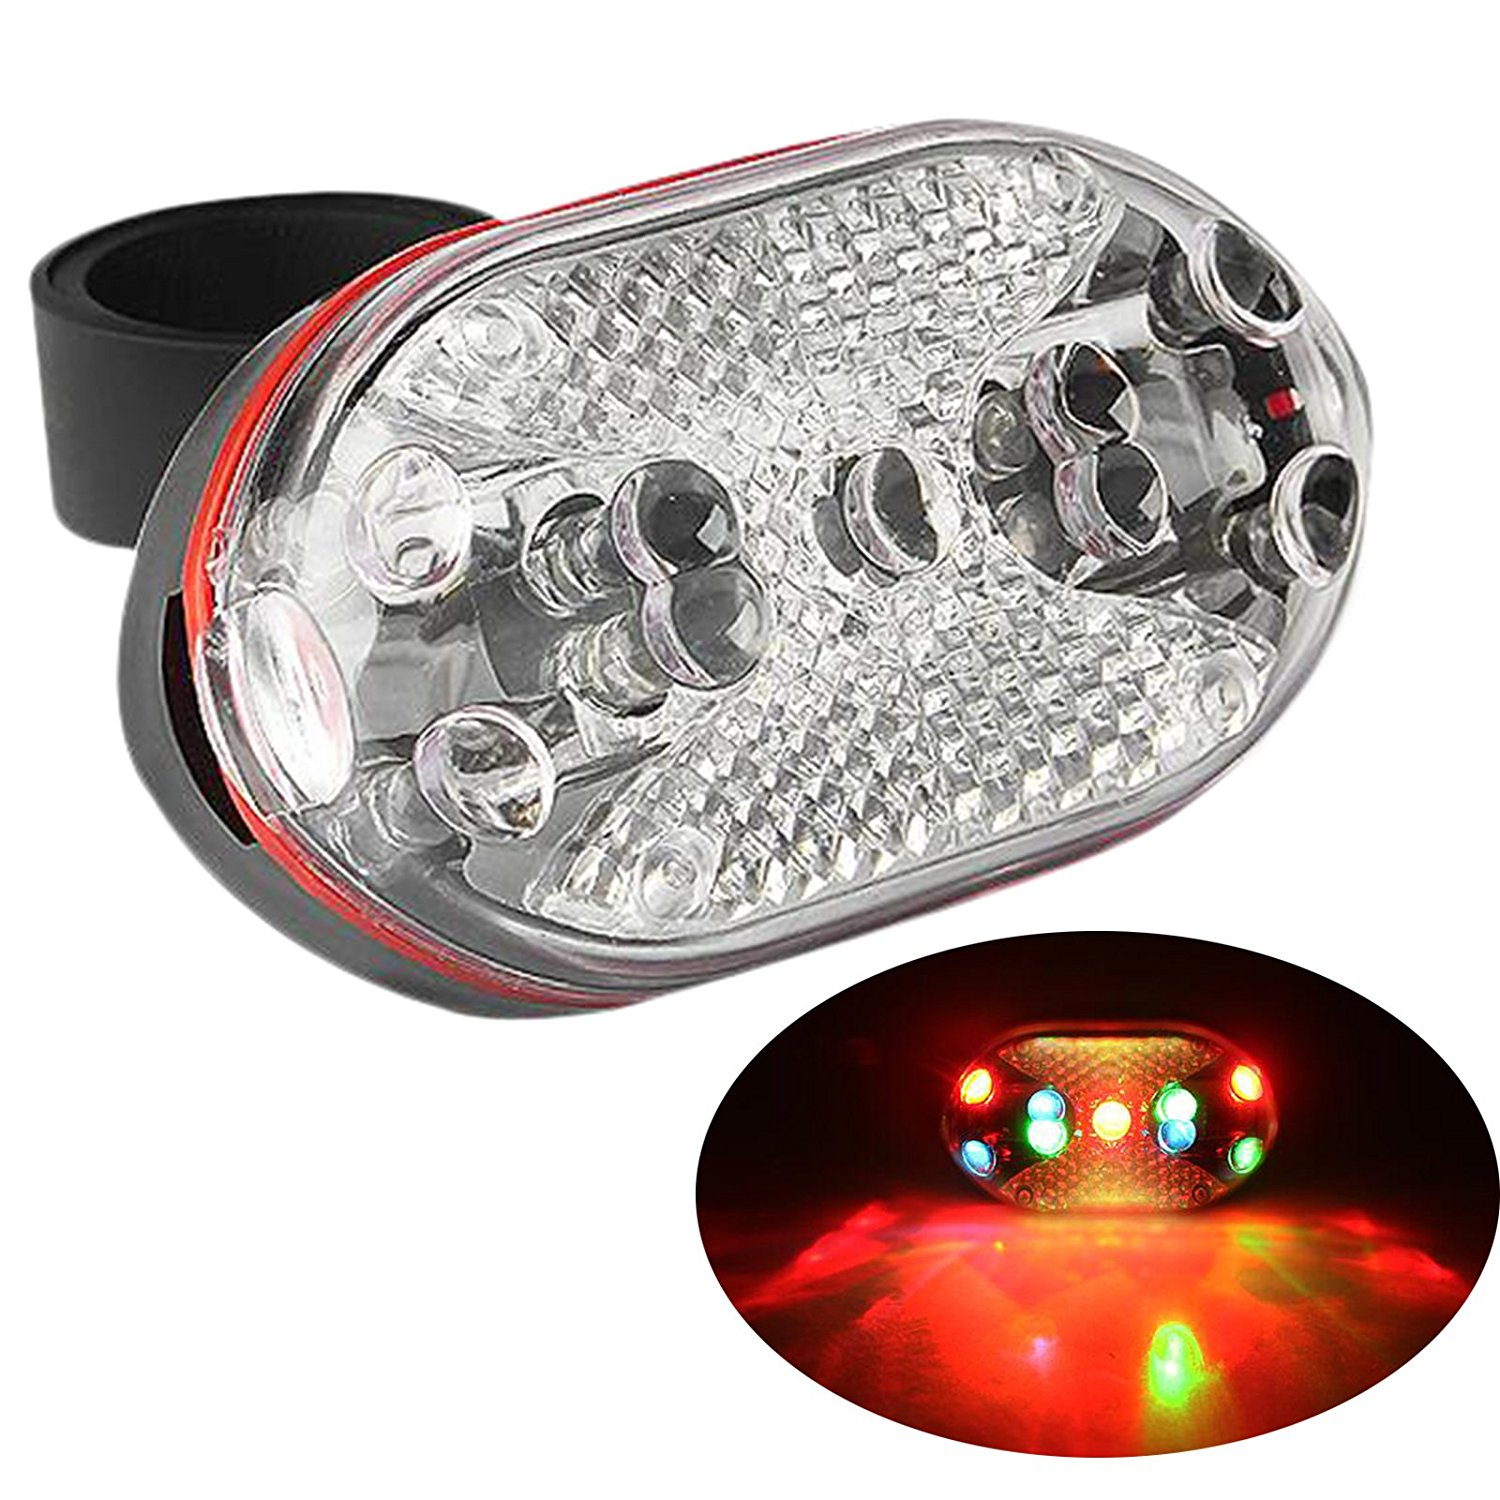 Bike Taillight, 9 Leds Bright Rear Bicycle Tail Light Strap-On Cycling Safety Light For Road, Racing, Mountain